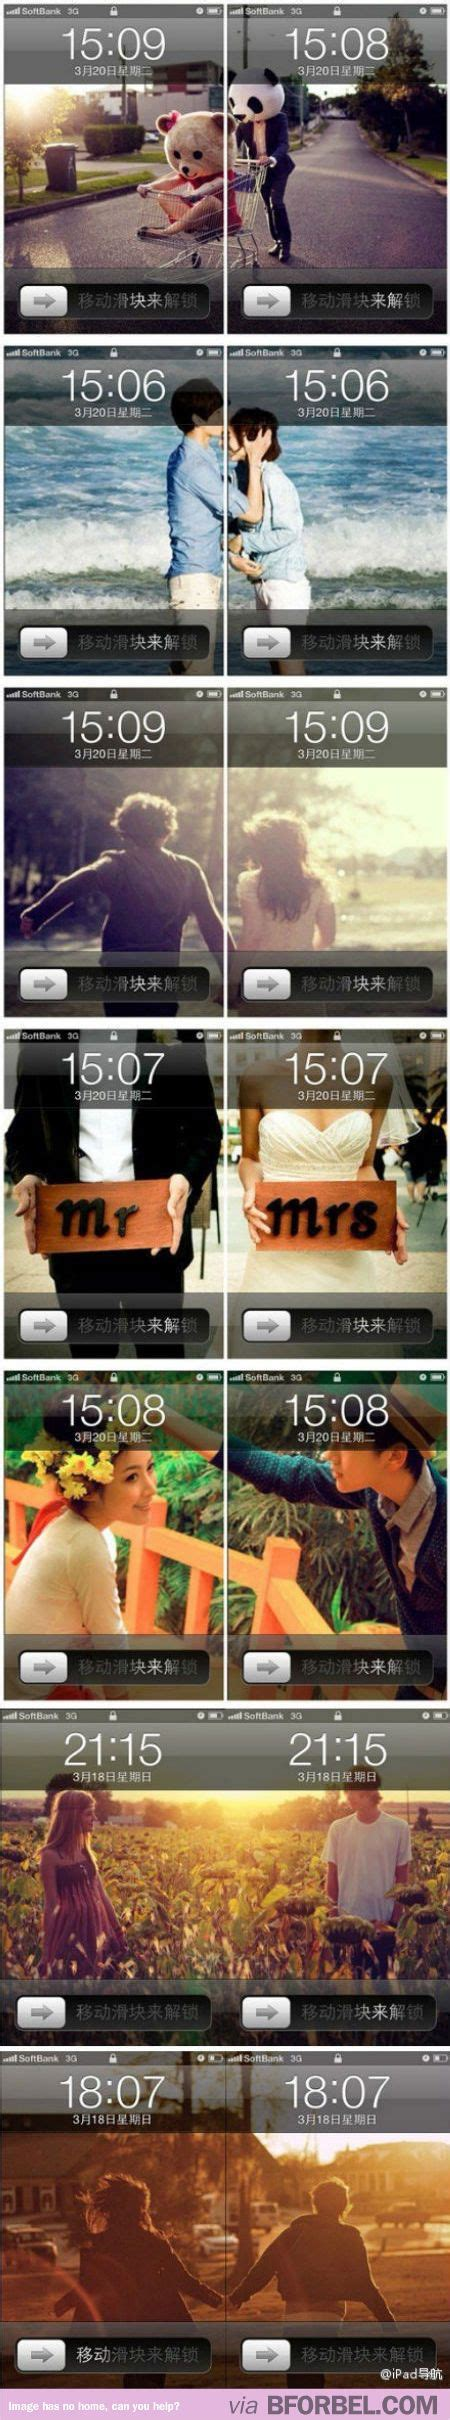 couple gm wallpaper 25 best images about cute phone wallpapers on pinterest